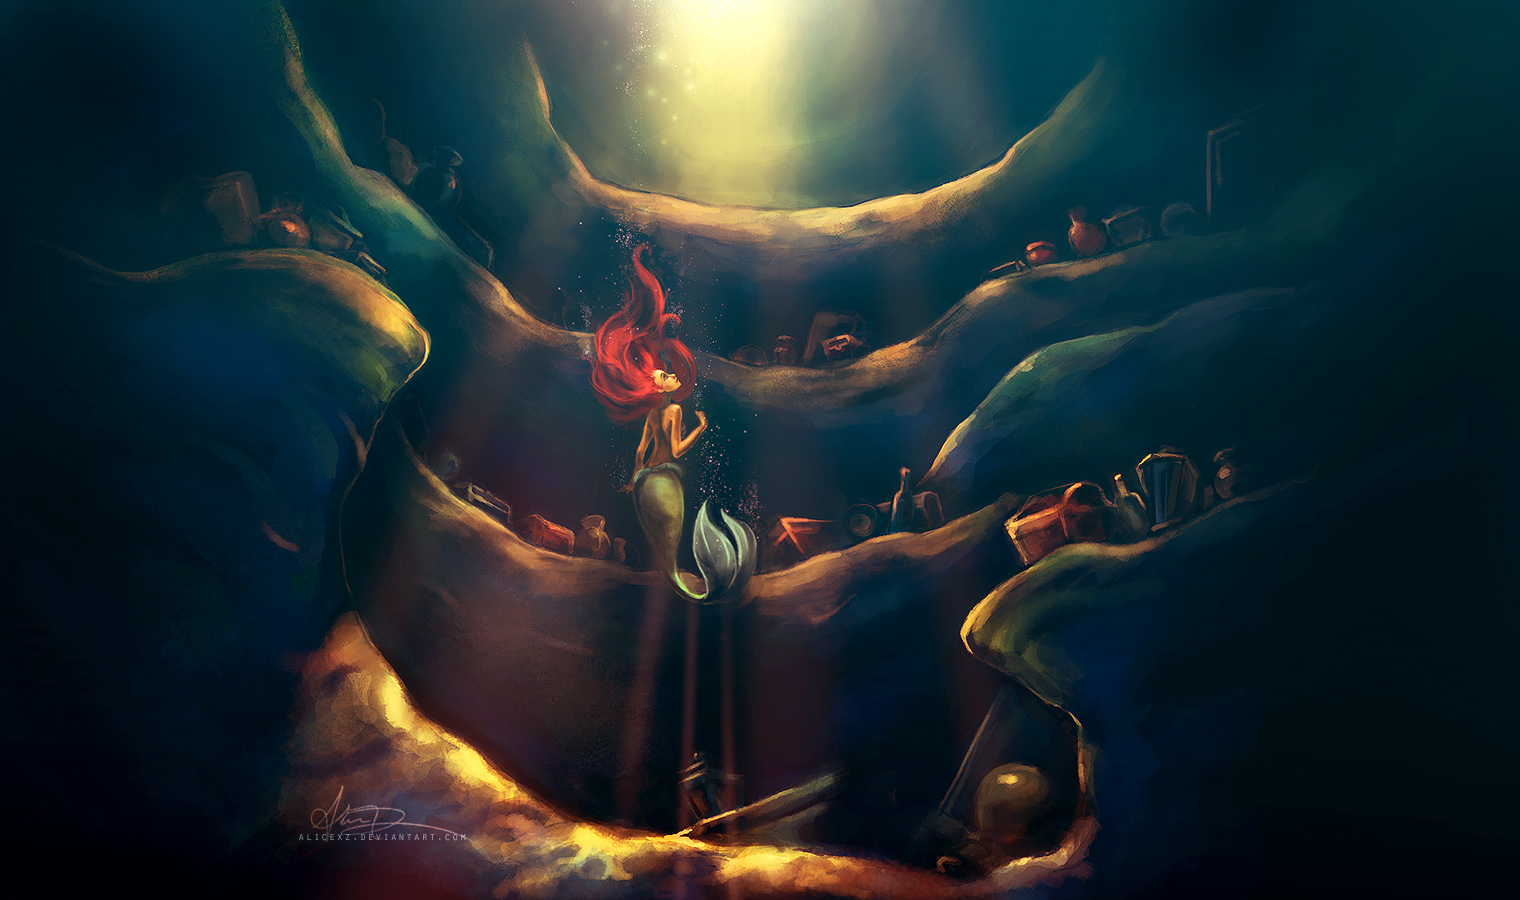 40 cute little mermaid wallpaper for desktop